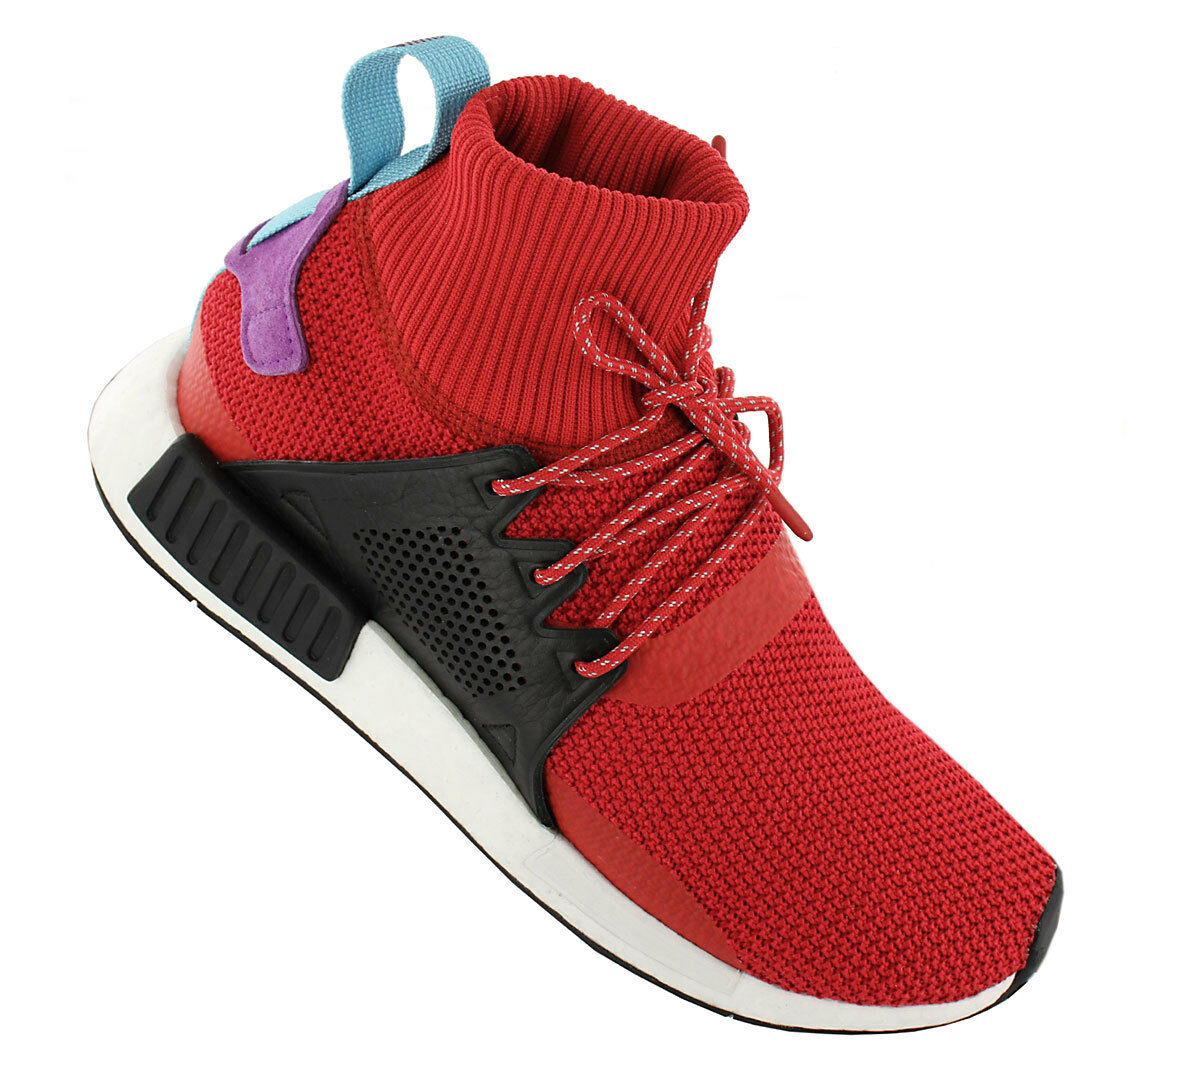 NEW adidas Originals NMD XR1 R1 BZ0632 Men''s shoes Trainers Sneakers SALE